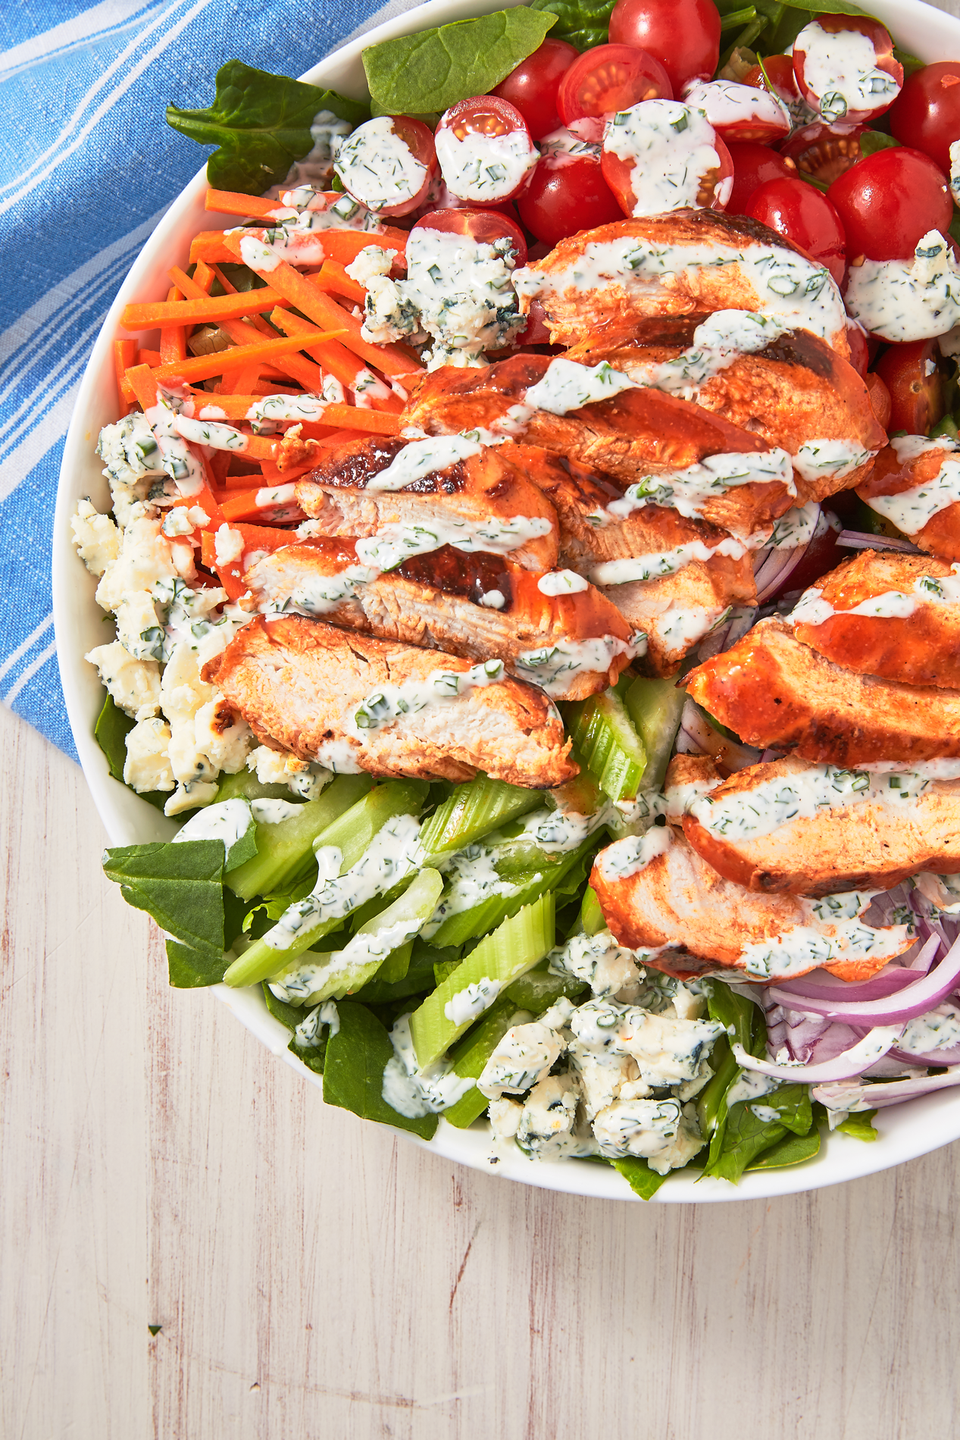 """<p>Buffalo wings but make it healthy.<br></p><p>Get the recipe from <a href=""""https://www.delish.com/cooking/recipe-ideas/a27925036/easy-buffalo-chicken-salad-recipe/"""" rel=""""nofollow noopener"""" target=""""_blank"""" data-ylk=""""slk:Delish"""" class=""""link rapid-noclick-resp"""">Delish</a>. </p>"""